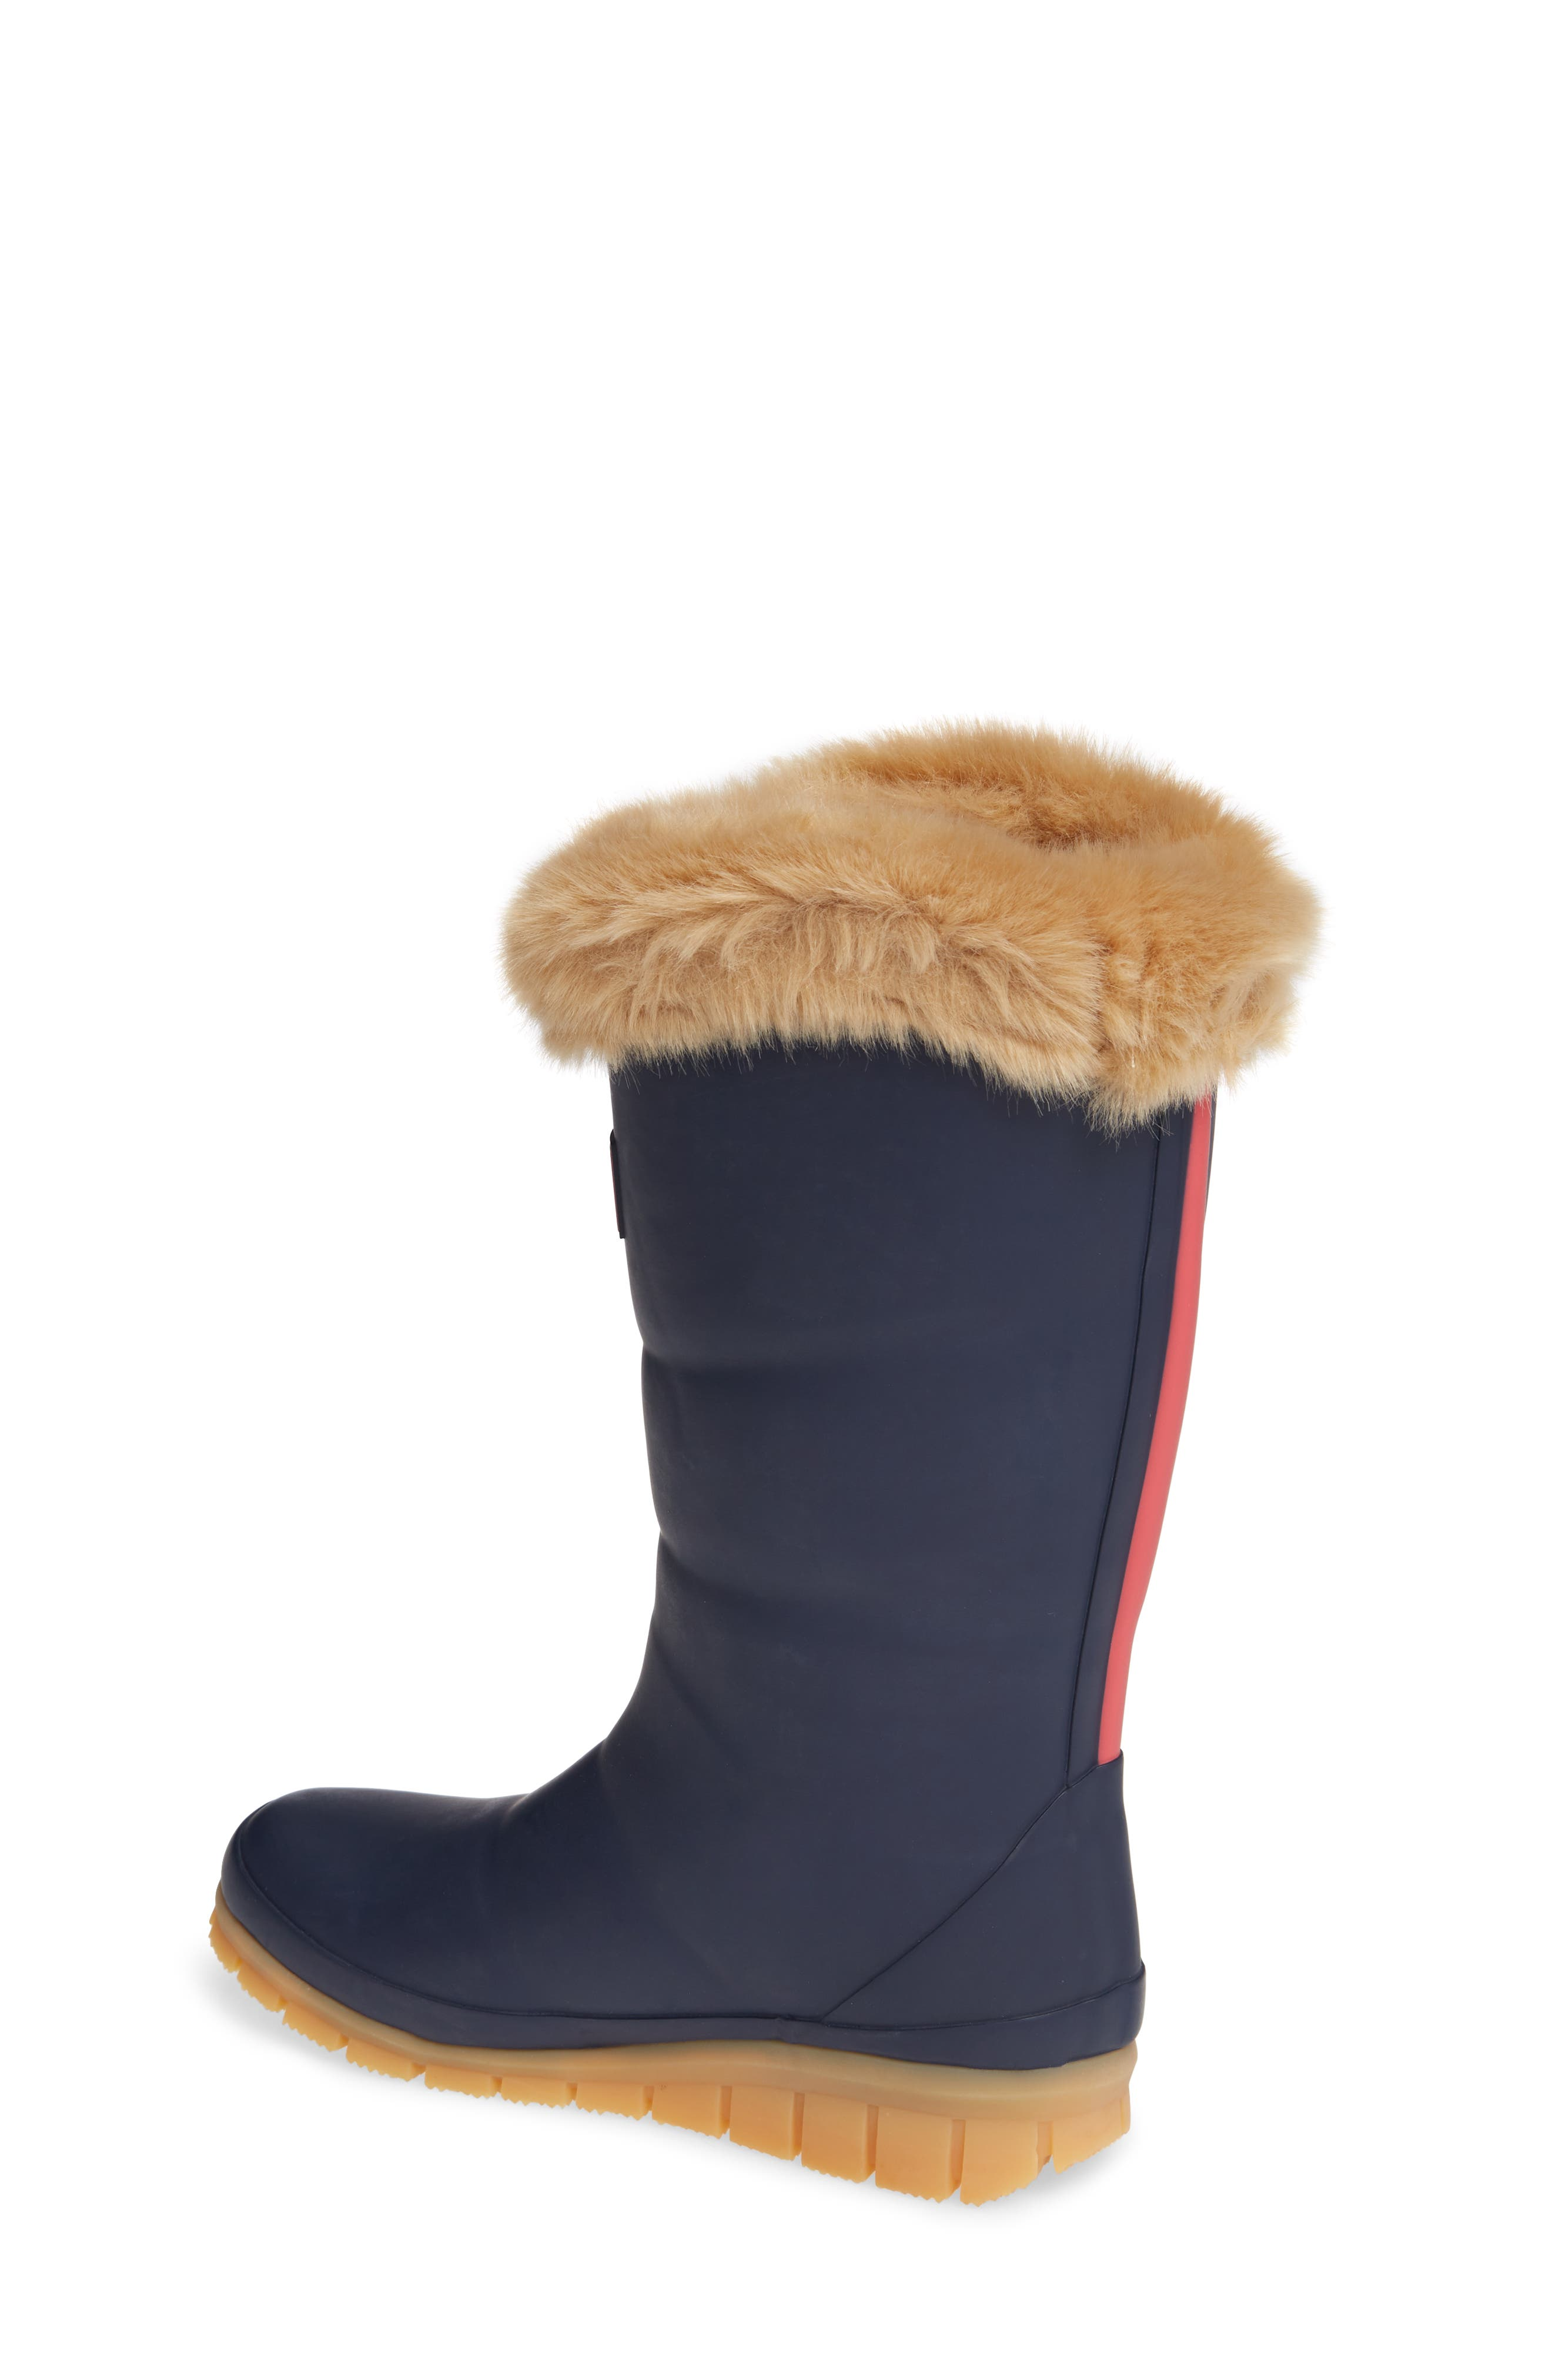 Padded Welly Waterproof Rain Boot with Faux Fur Trim,                             Alternate thumbnail 2, color,                             FRENCH NAVY